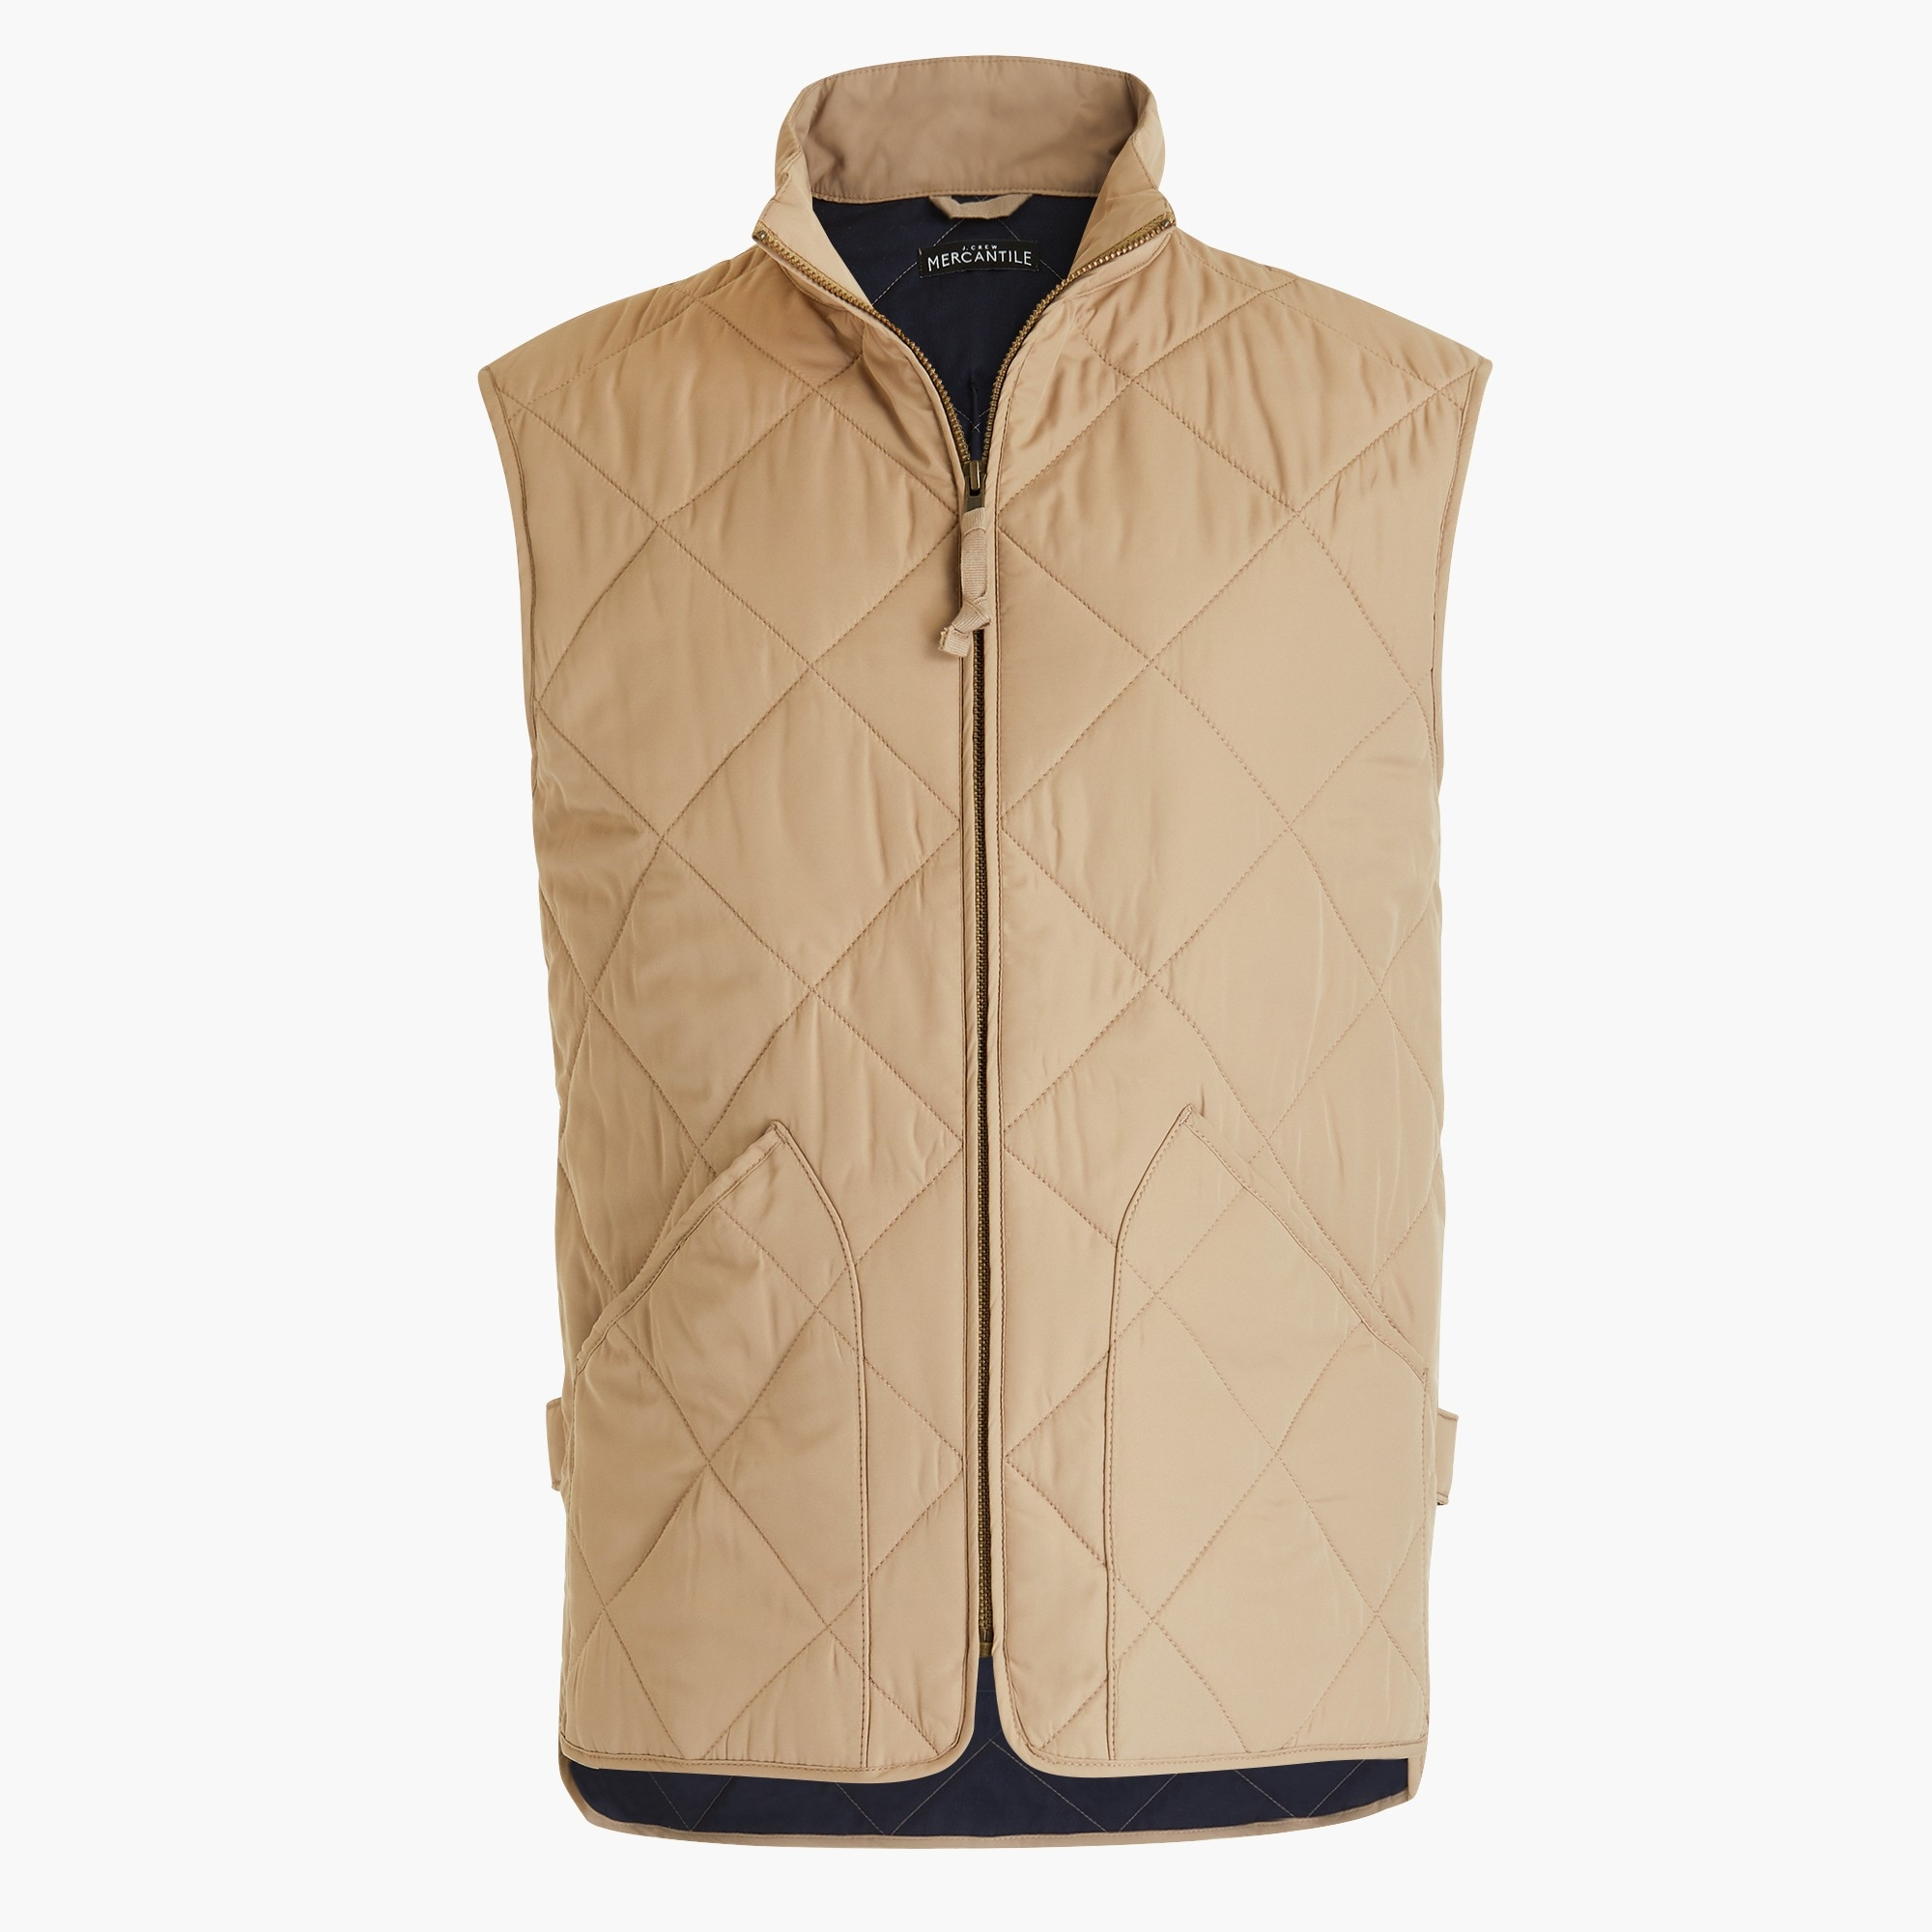 Image 1 for J.Crew Mercantile Walker vest